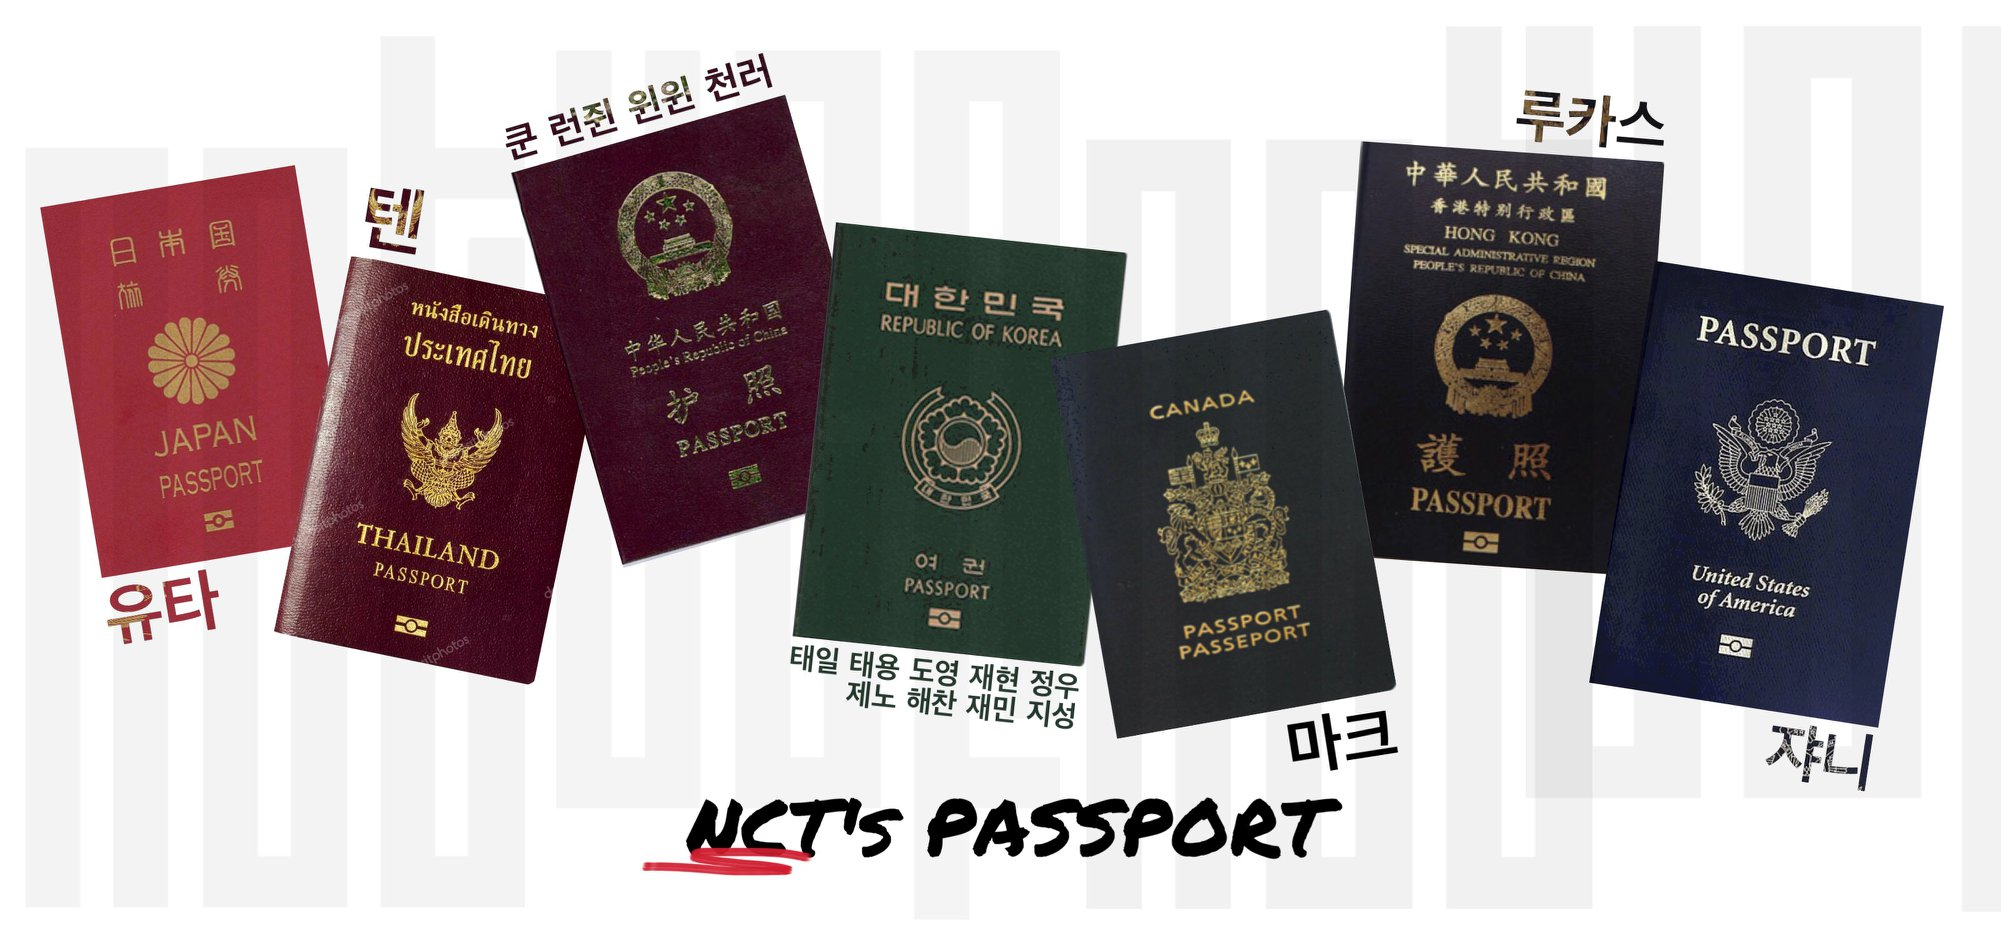 NCT Crowned The Group With The Largest Variety Of Passports